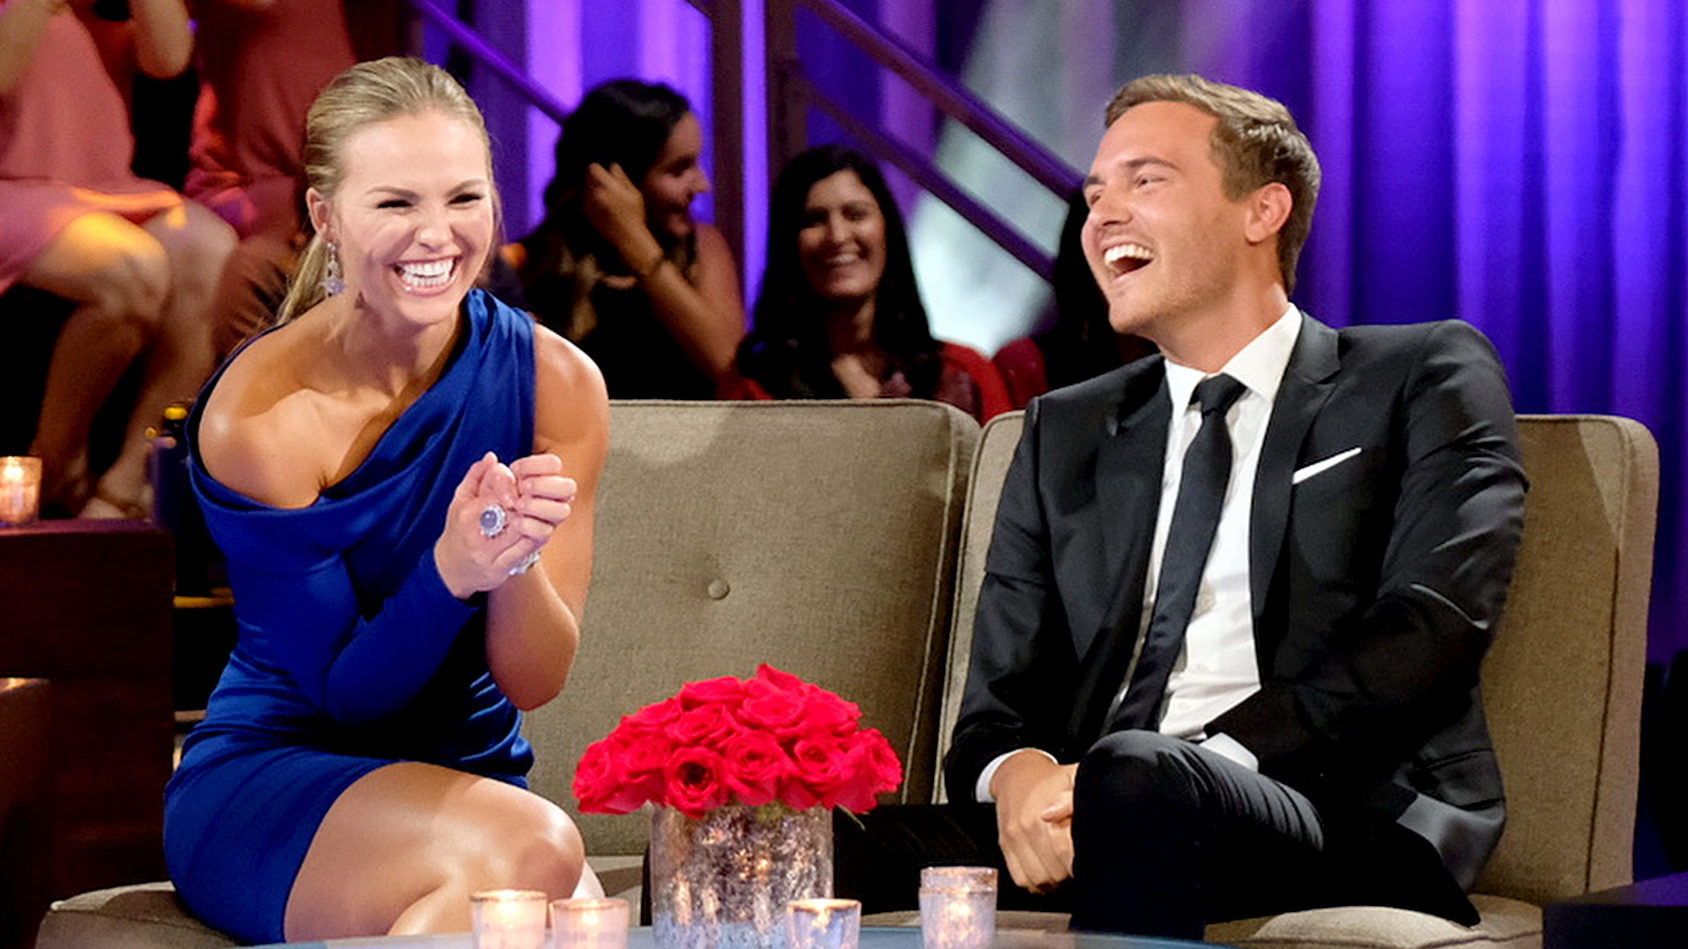 The Bachelor 2020 Episode 2 Leaks Peter and Hannah to meet again after the Fashion Show Date